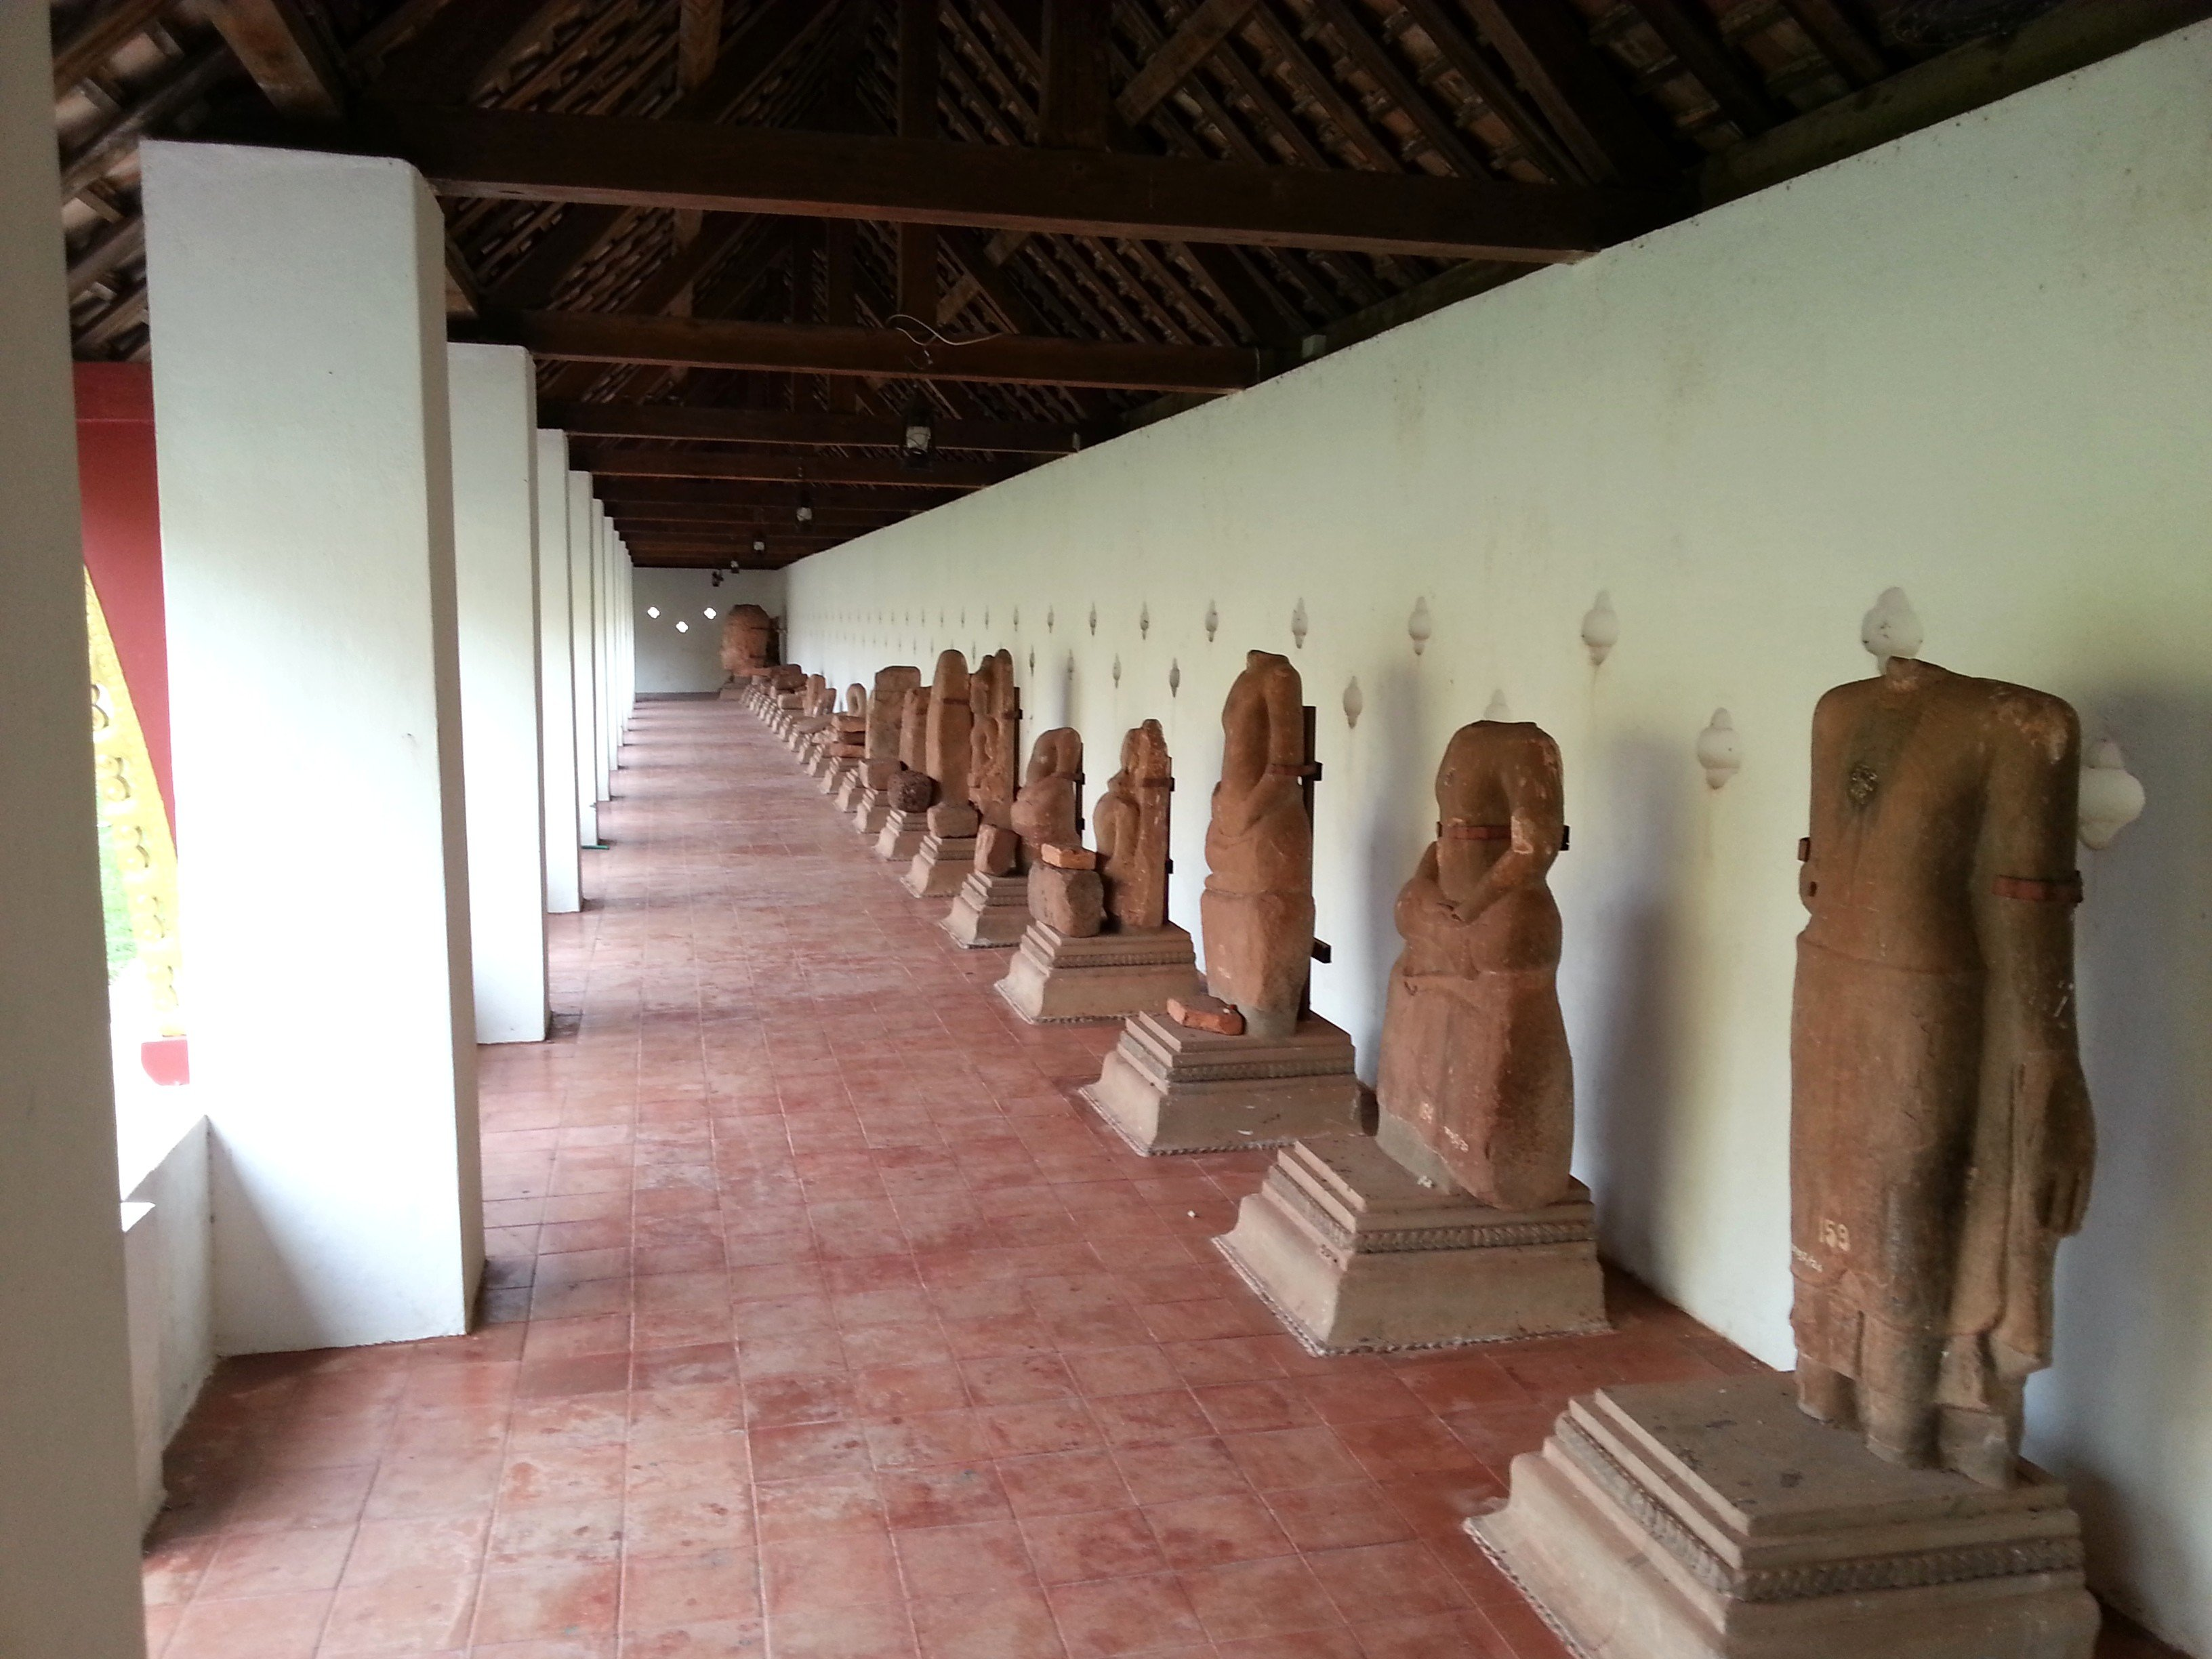 Statues found at the Pha That Luang site